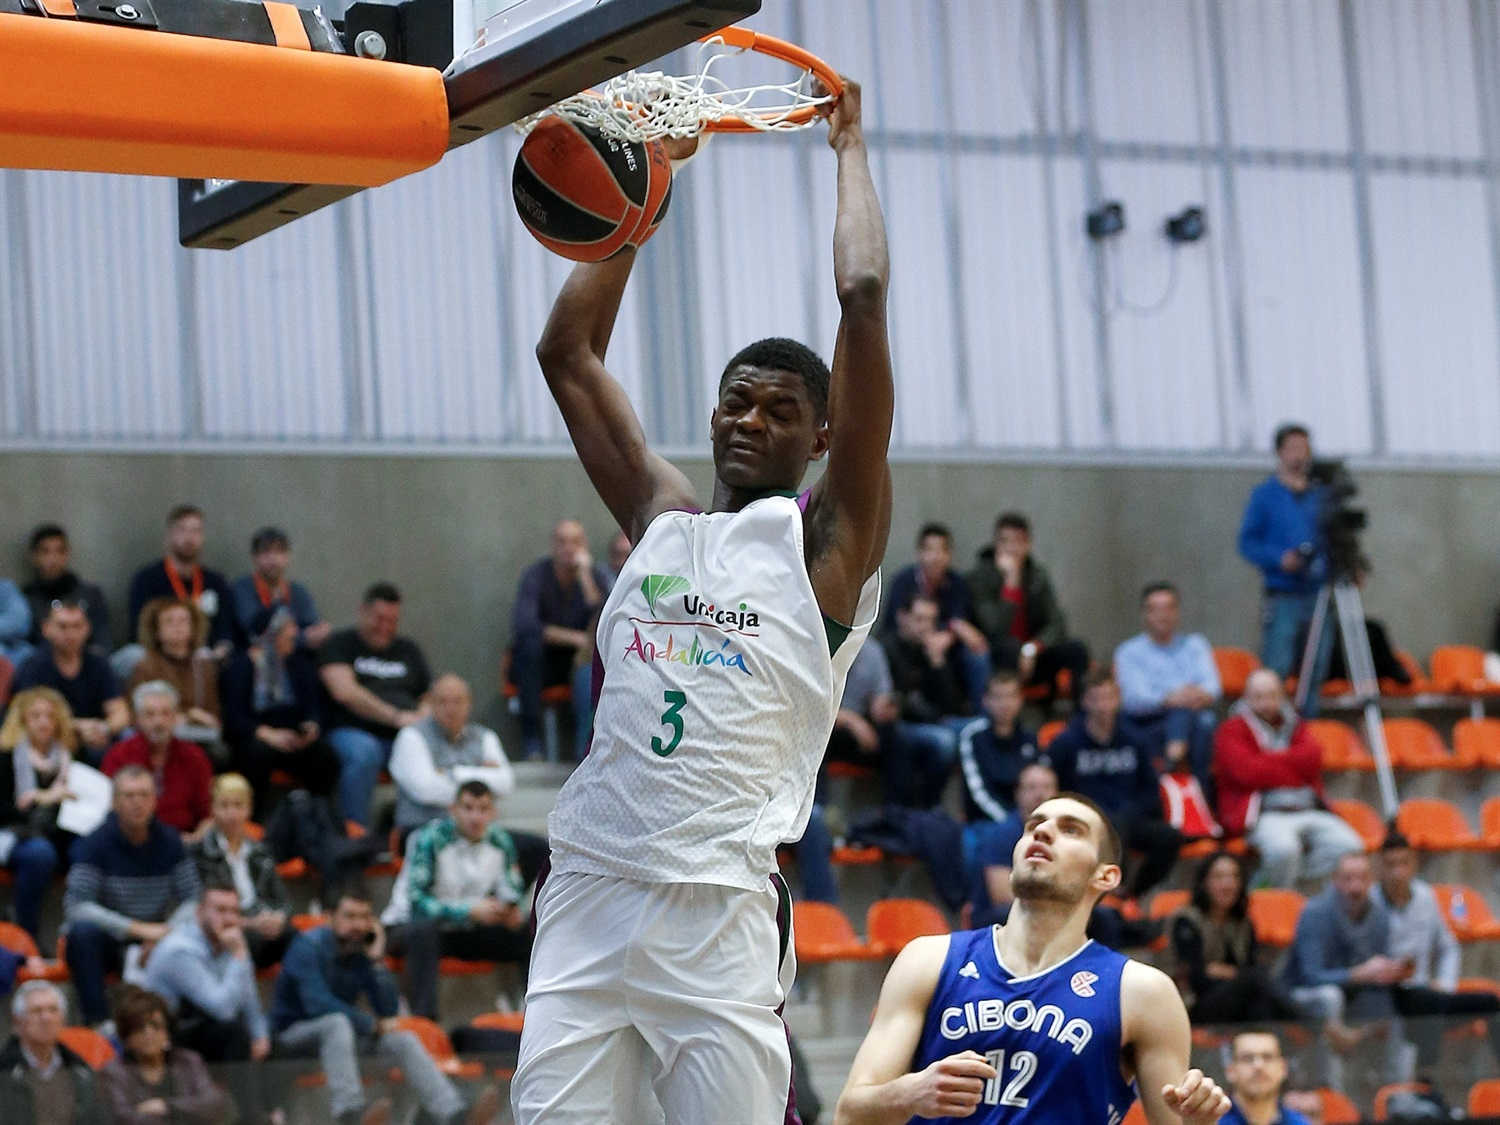 Yannick Nzosa - U18 Unicaja Malaga - ANGT Valencia 2019-20 (photo Miguel Angel Polo) - JT19